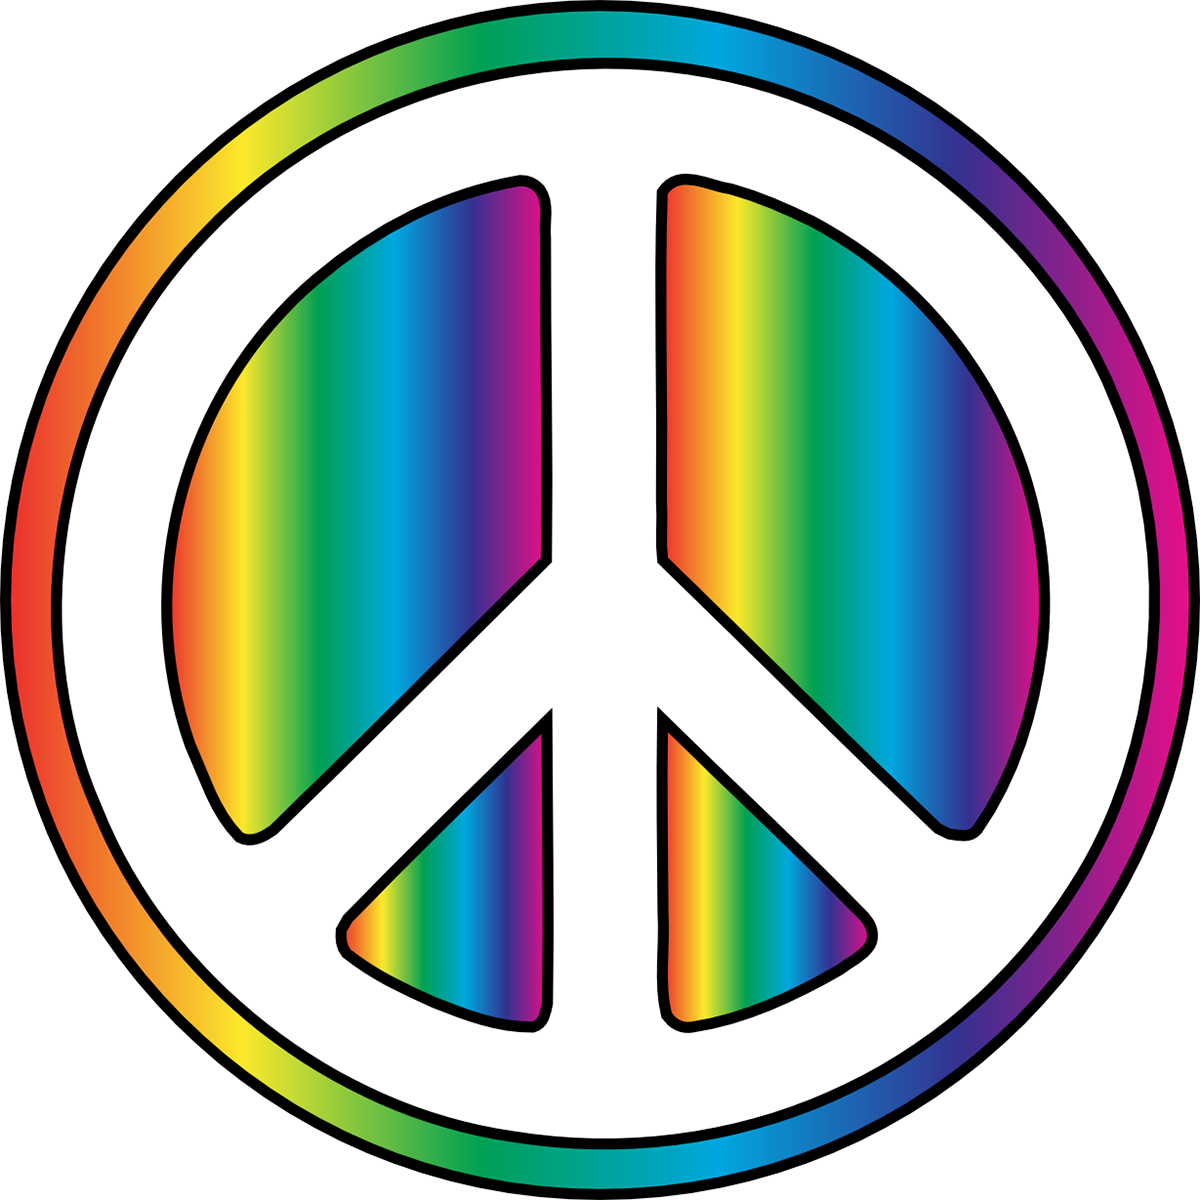 Rainbow peace sign filter for facebook profile pictures twitter rainbow peace sign filter for facebook profile pictures twitter profile pictures youtube profile pictures cover photos banners and logos biocorpaavc